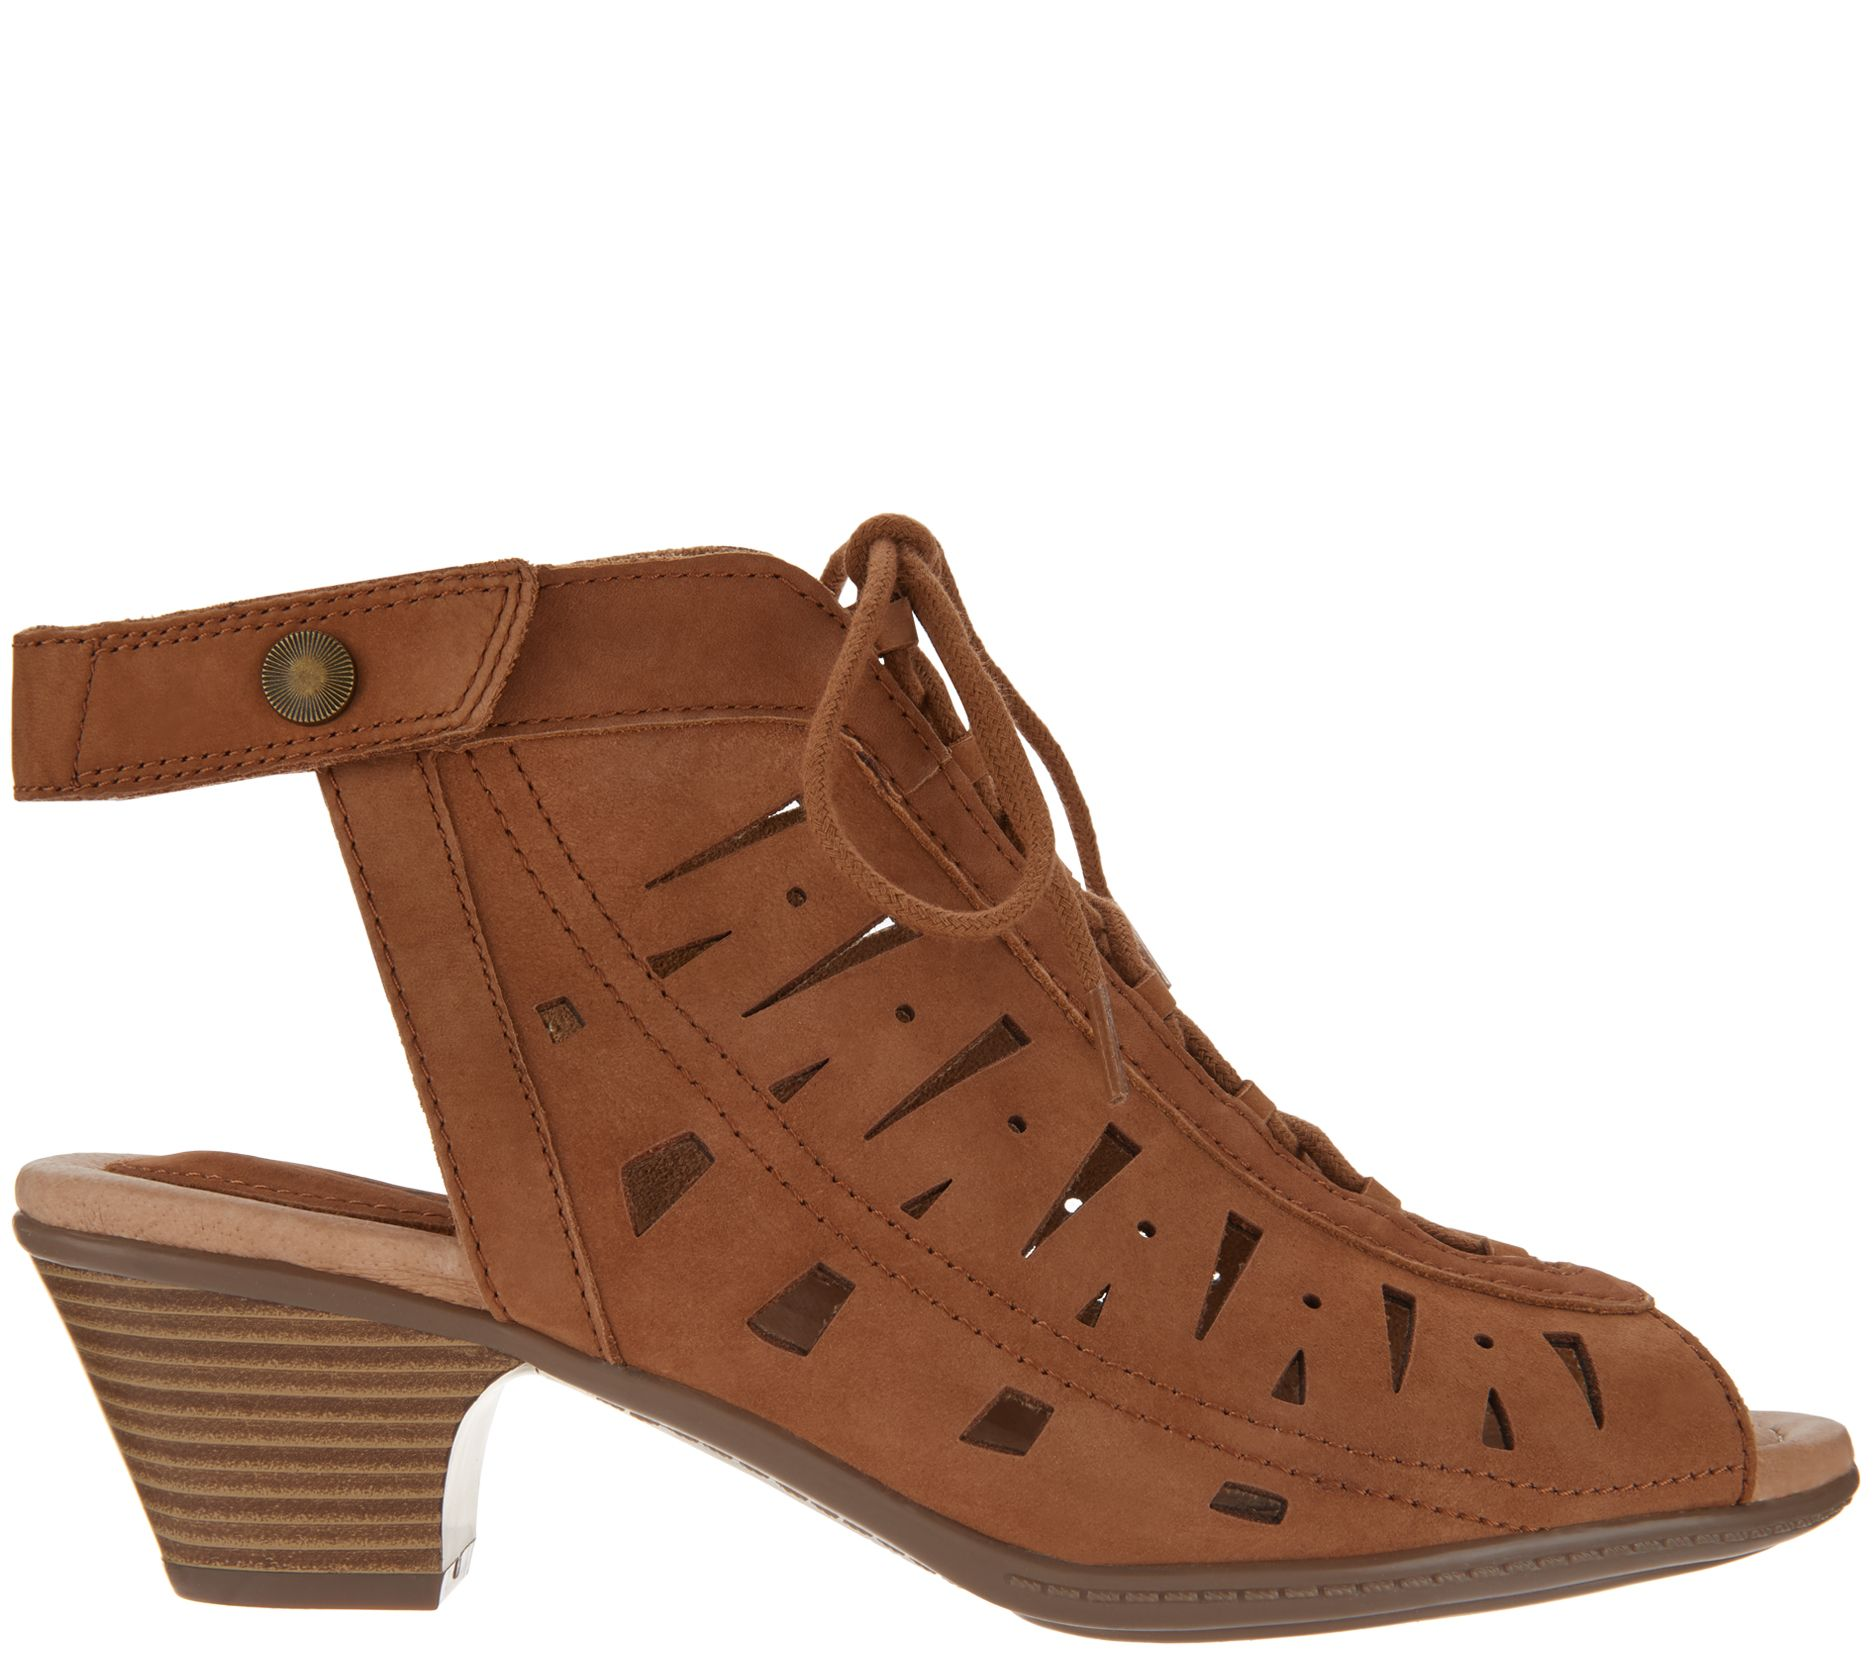 cc4e70cee693 Earth Nubuck Leather Lace-Up Sandals - Kristen - Page 1 — QVC.com